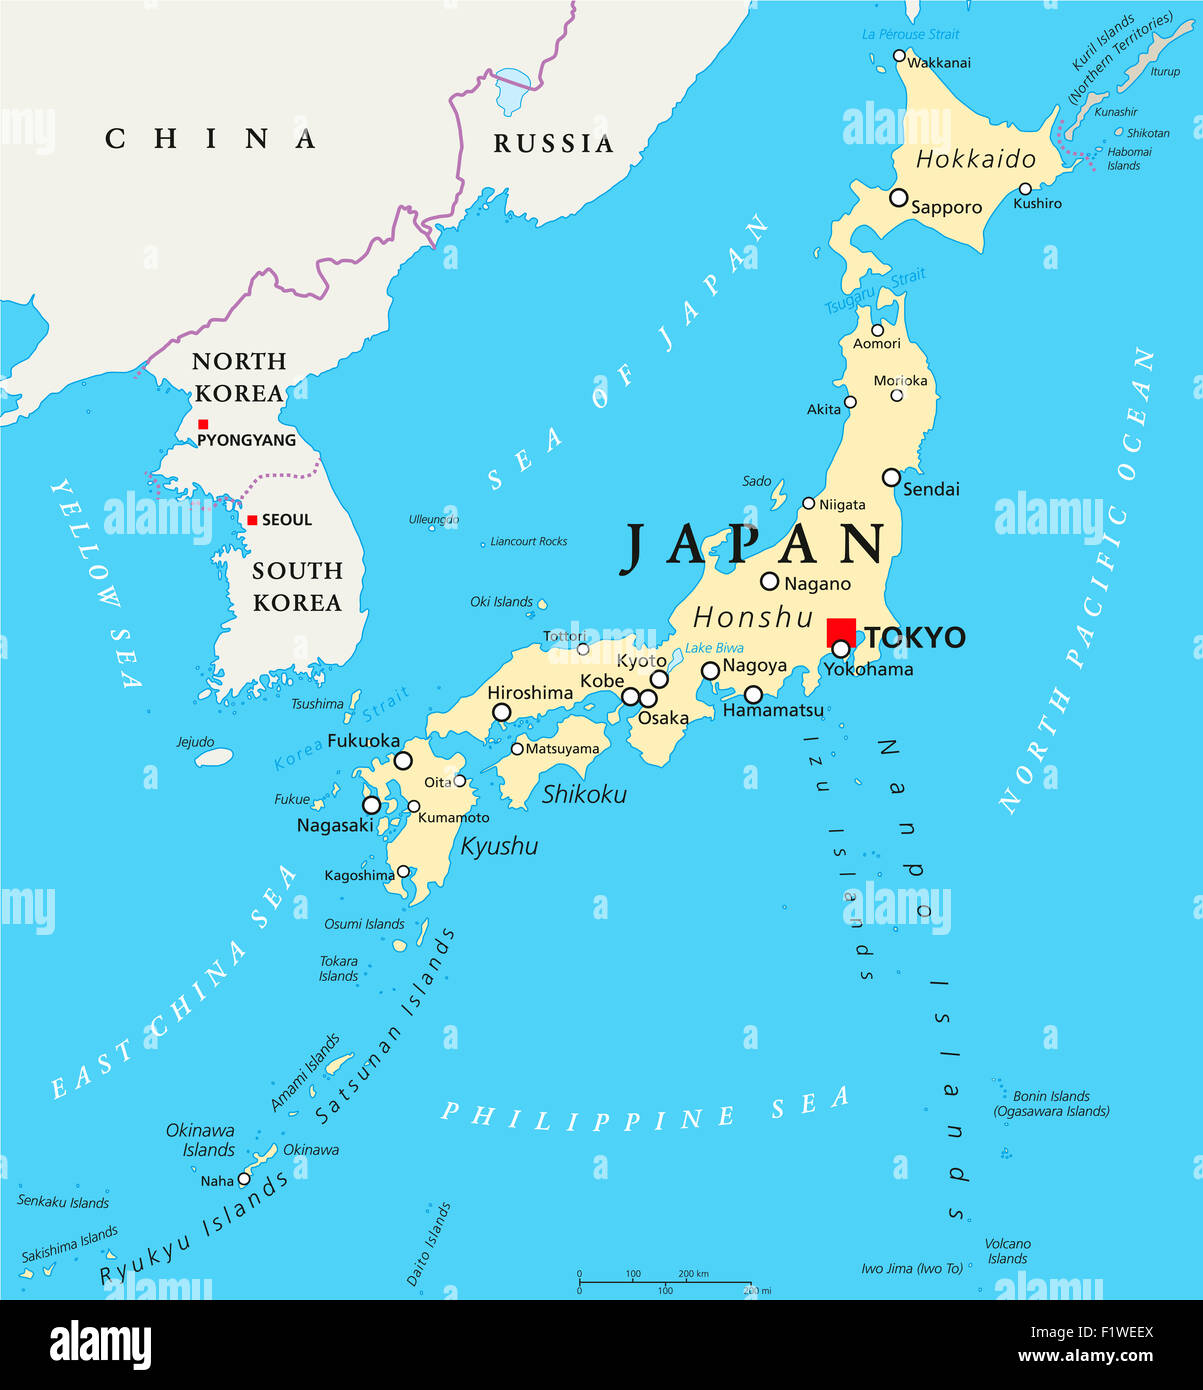 Japan Map Kyushu Stock Photos Japan Map Kyushu Stock Images Alamy - Japan map labeled